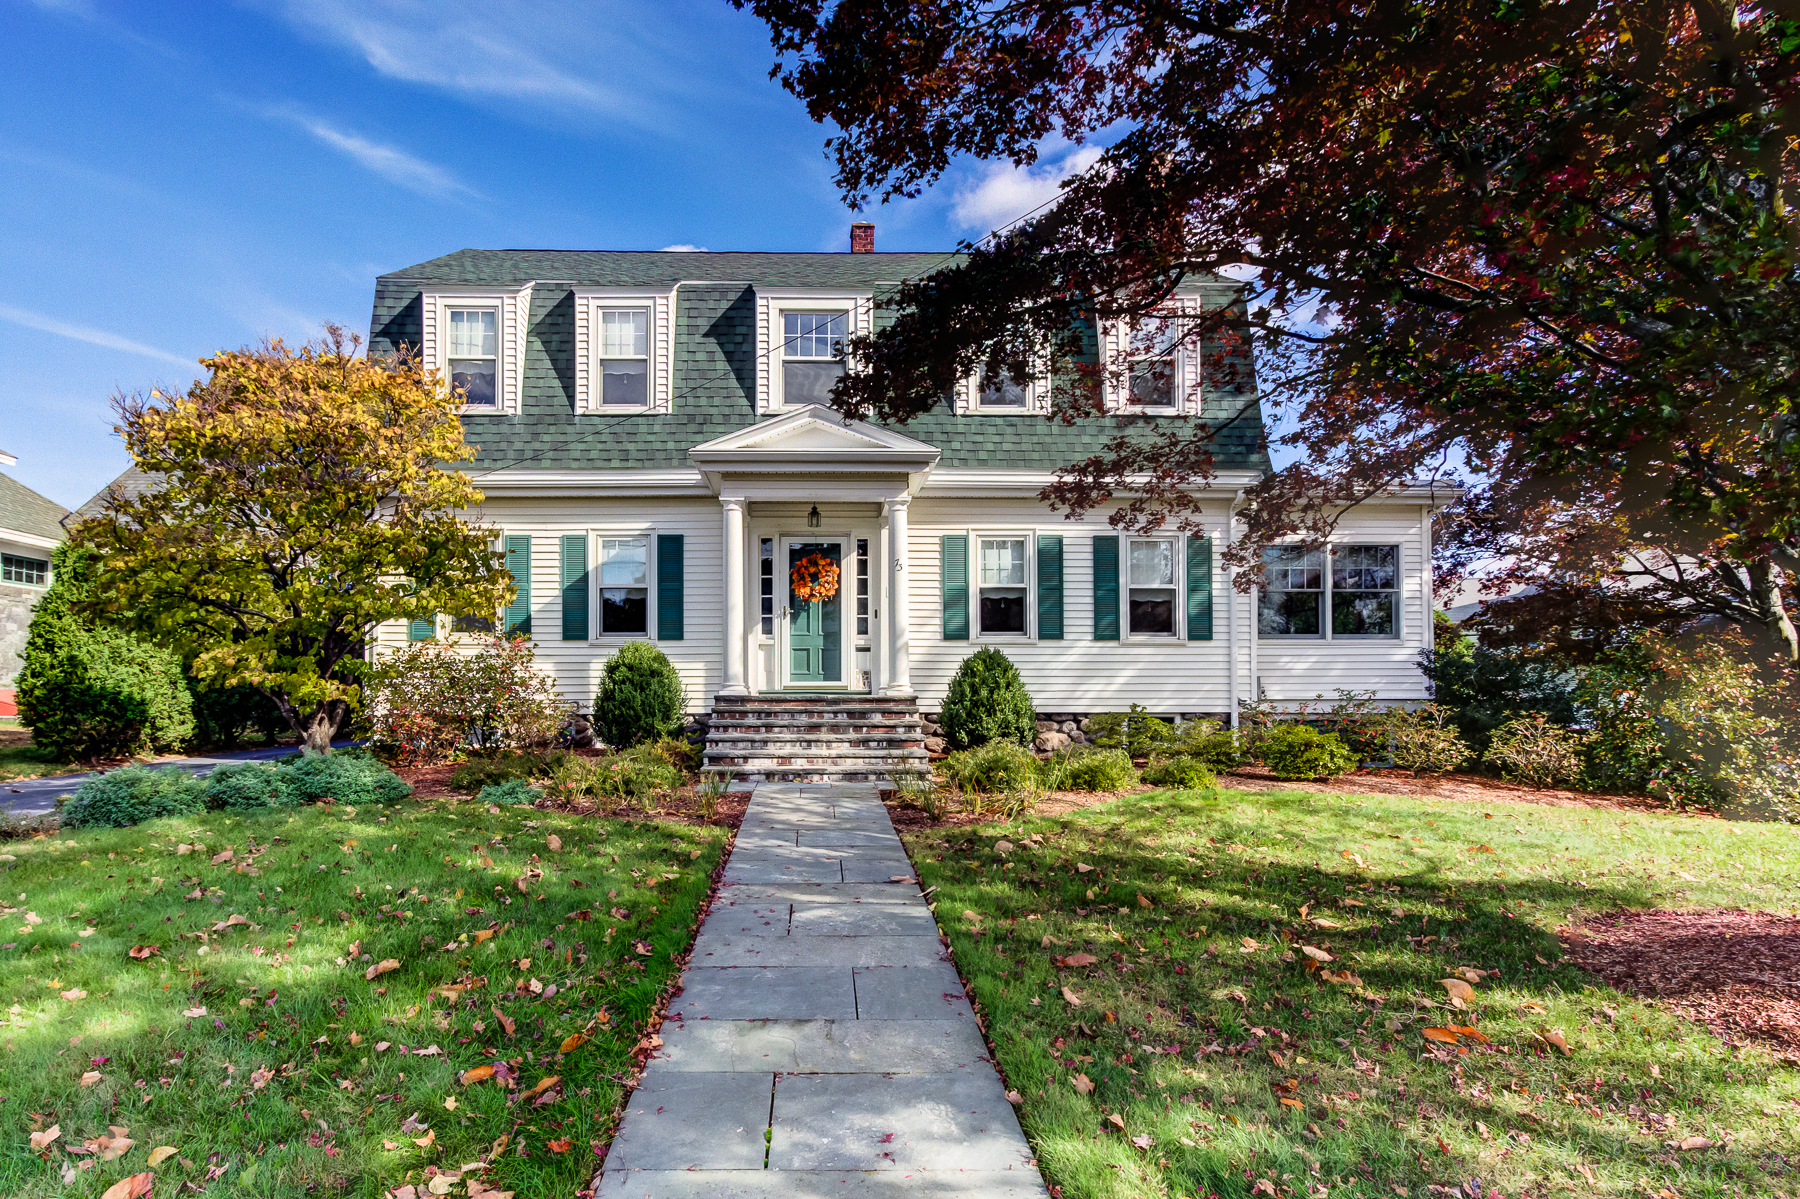 Single Family Home for Sale at Charming Gambrel Home 73 Congress Street Milford, Massachusetts 01757 United States